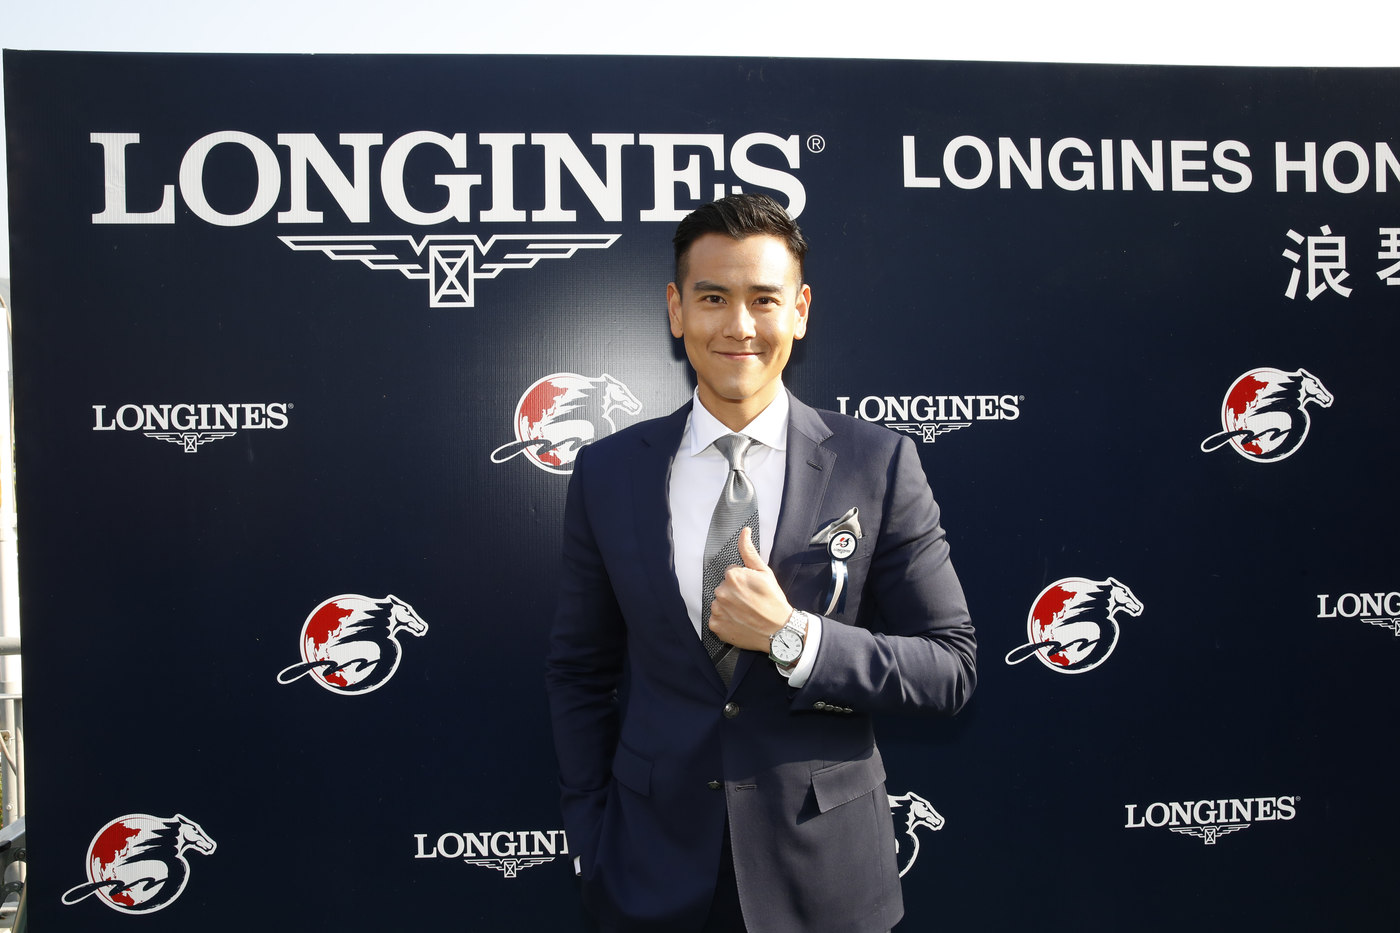 Longines Flat Racing Event: Longines welcomes its Ambassador of Elegance Eddie Peng at the 2017 Longines Hong Kong International Races 15